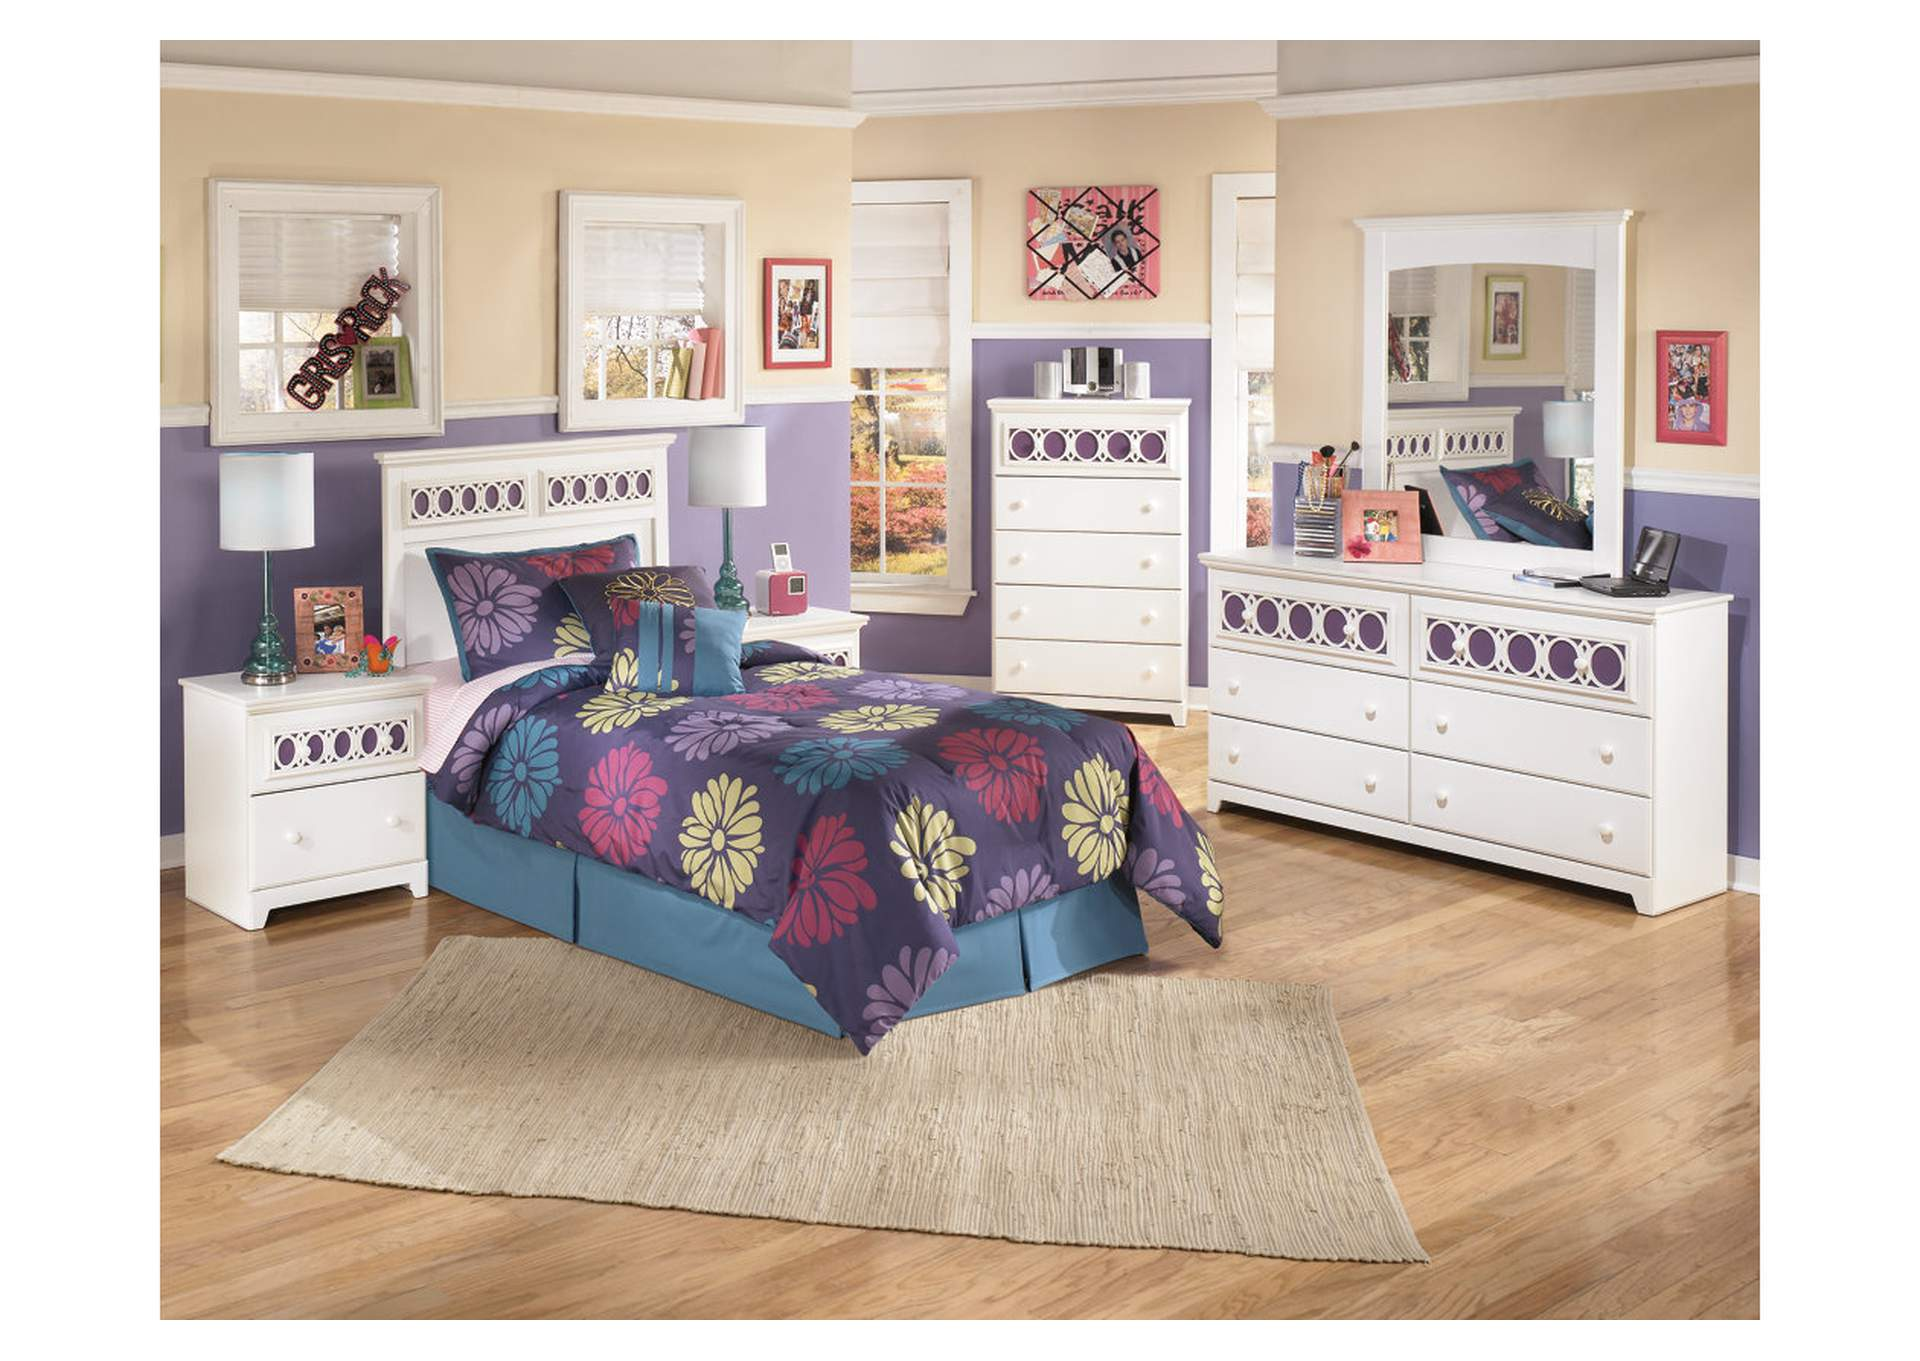 Zayley Twin Panel Headboard w/Dresser, Mirror & Drawer Chest,Signature Design By Ashley